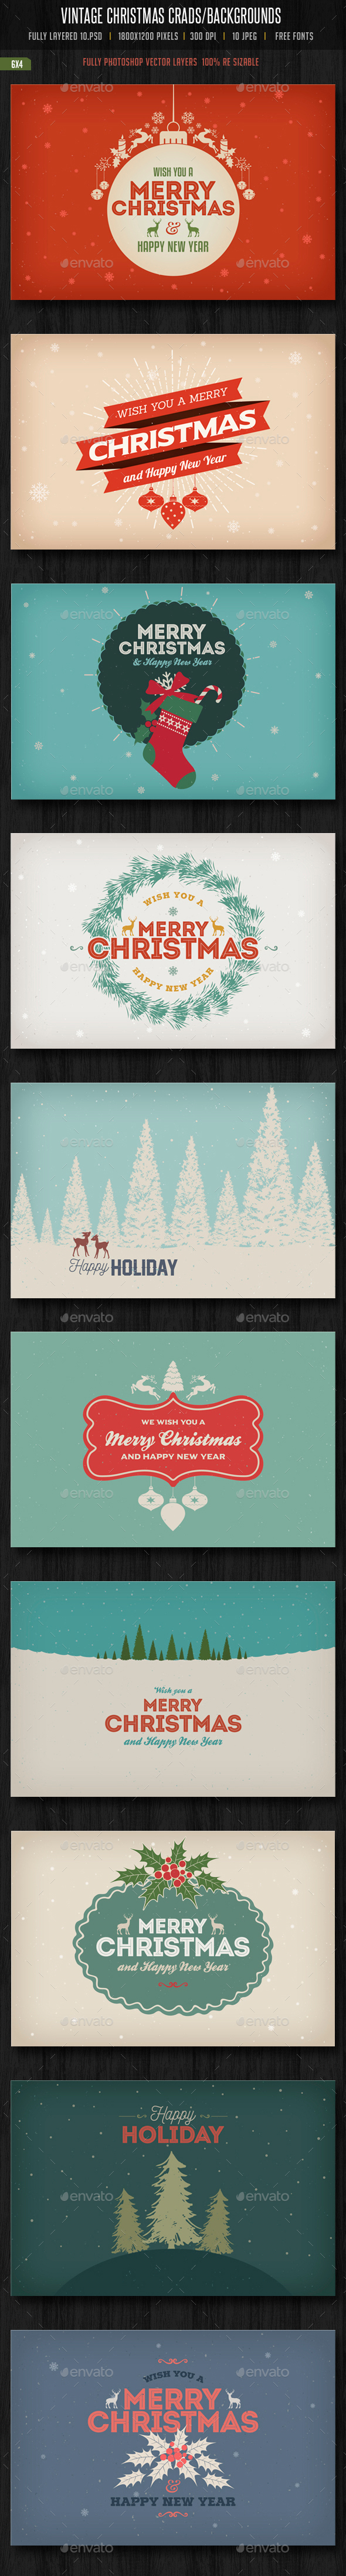 Vintage Christmas Cards/ Backgrounds - Backgrounds Graphics